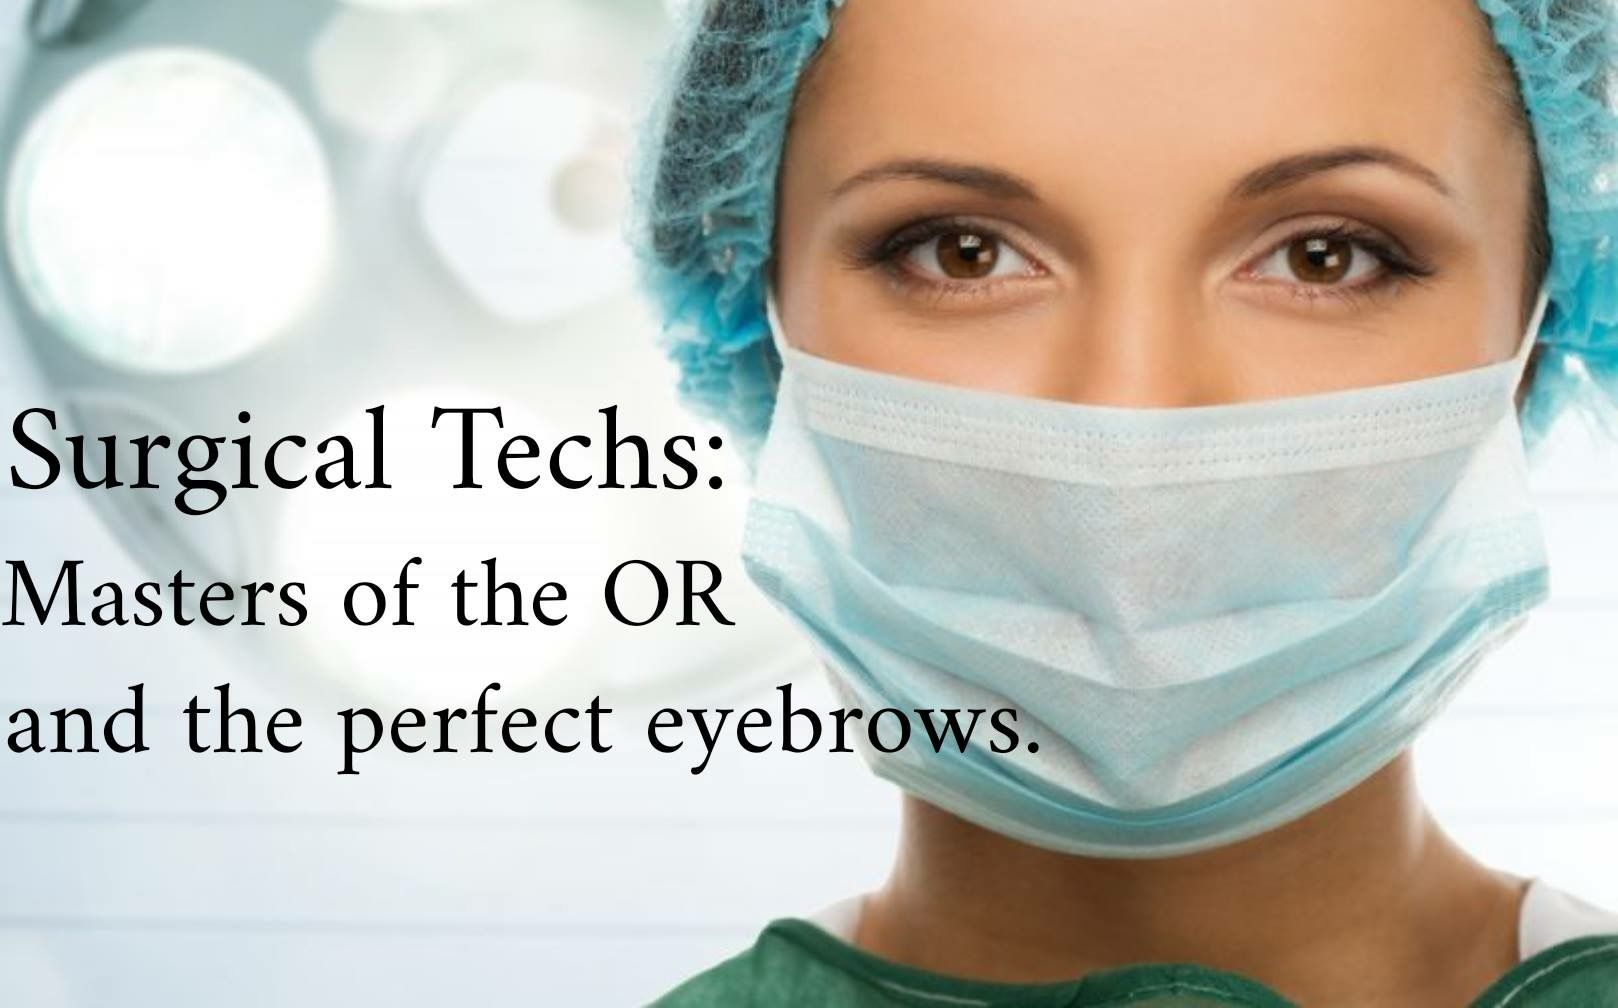 Pin by Kerri Porter on surgical humor Perfect eyebrows